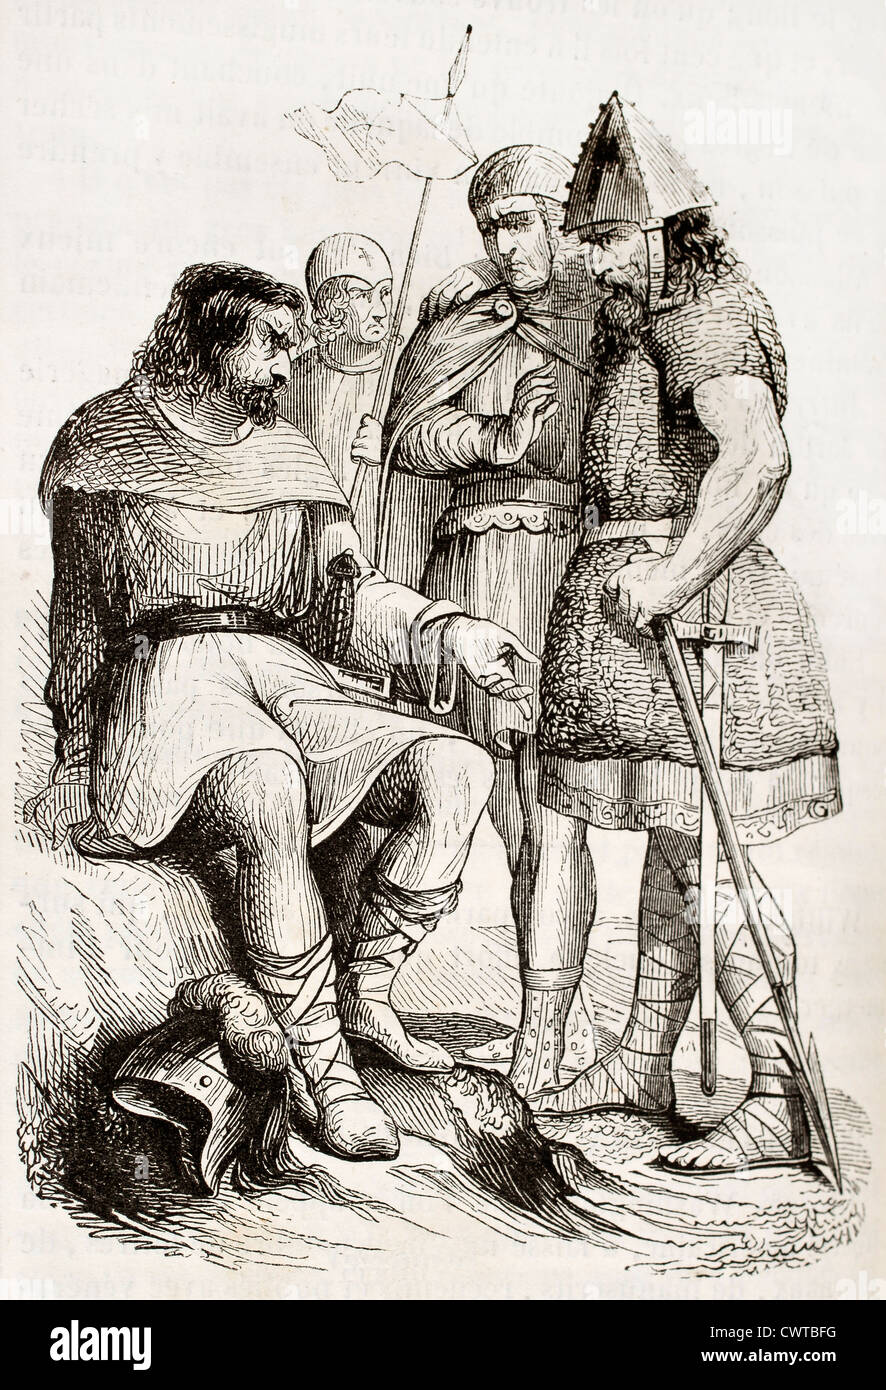 Charlemagne soldiers - Stock Image